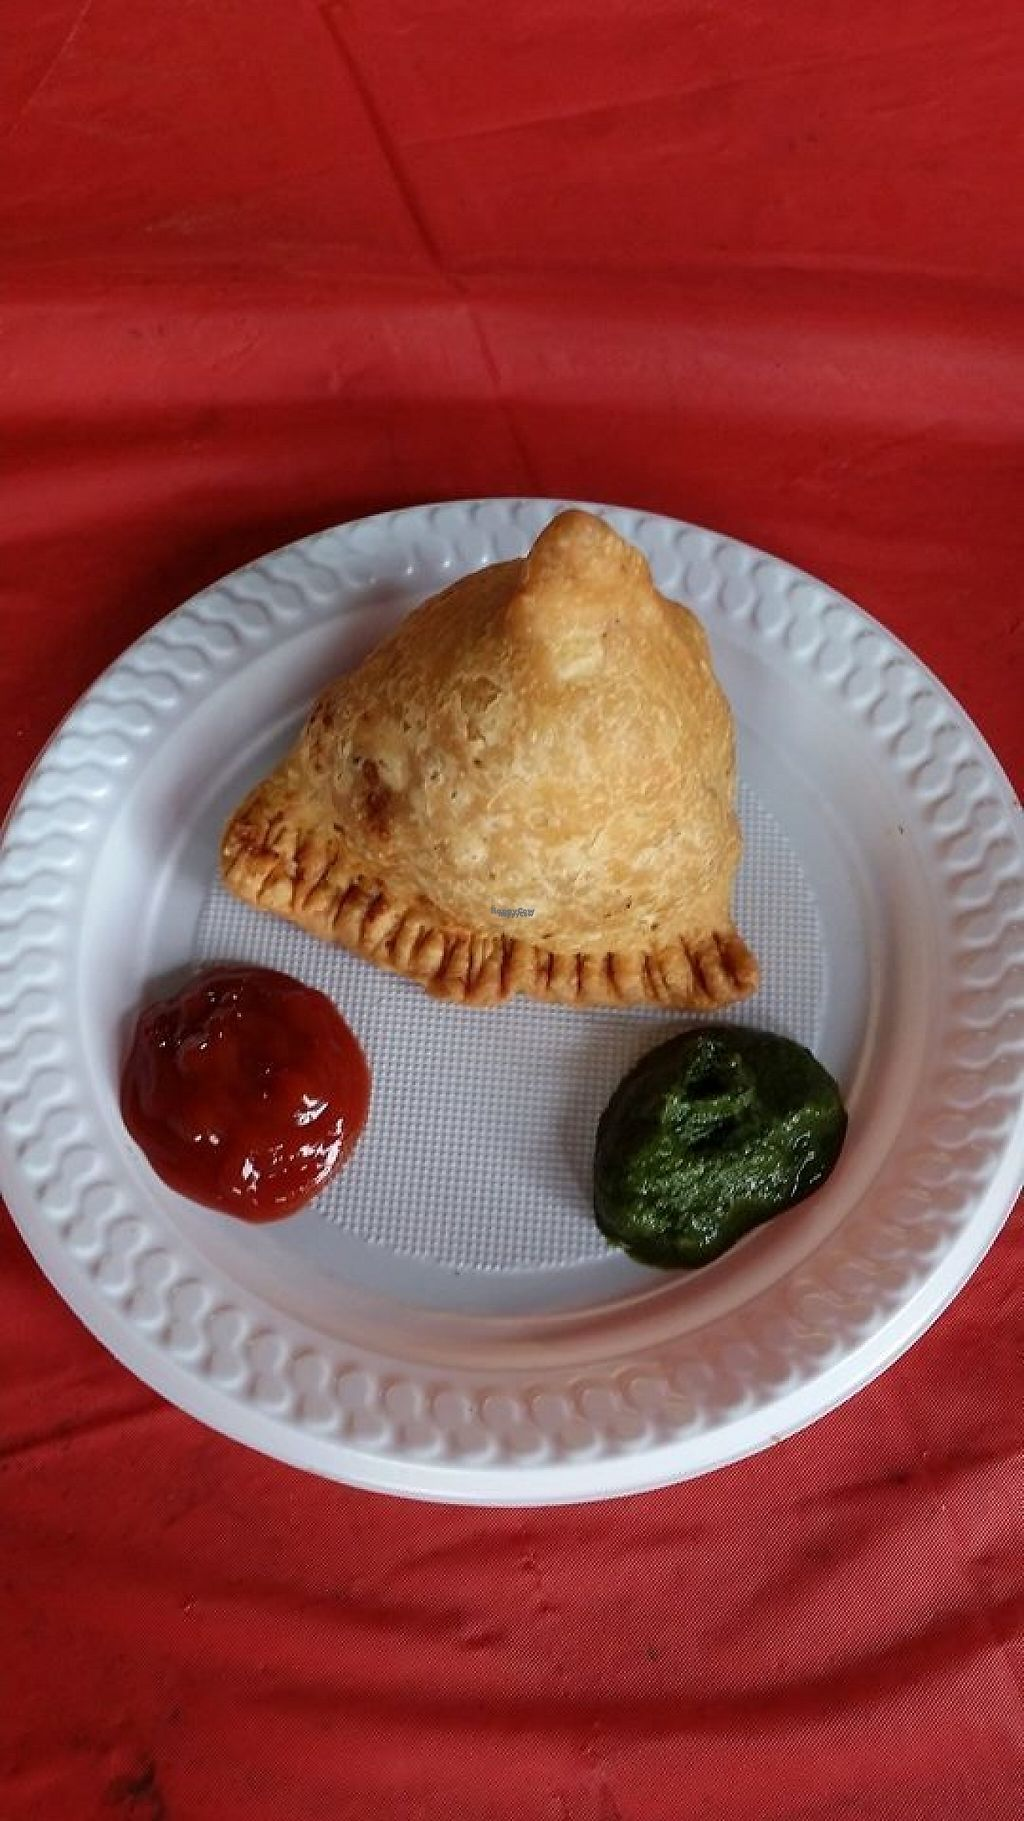 """Photo of Werribee Indian Chaat  by <a href=""""/members/profile/community"""">community</a> <br/>samosa  <br/> January 10, 2017  - <a href='/contact/abuse/image/73837/210287'>Report</a>"""